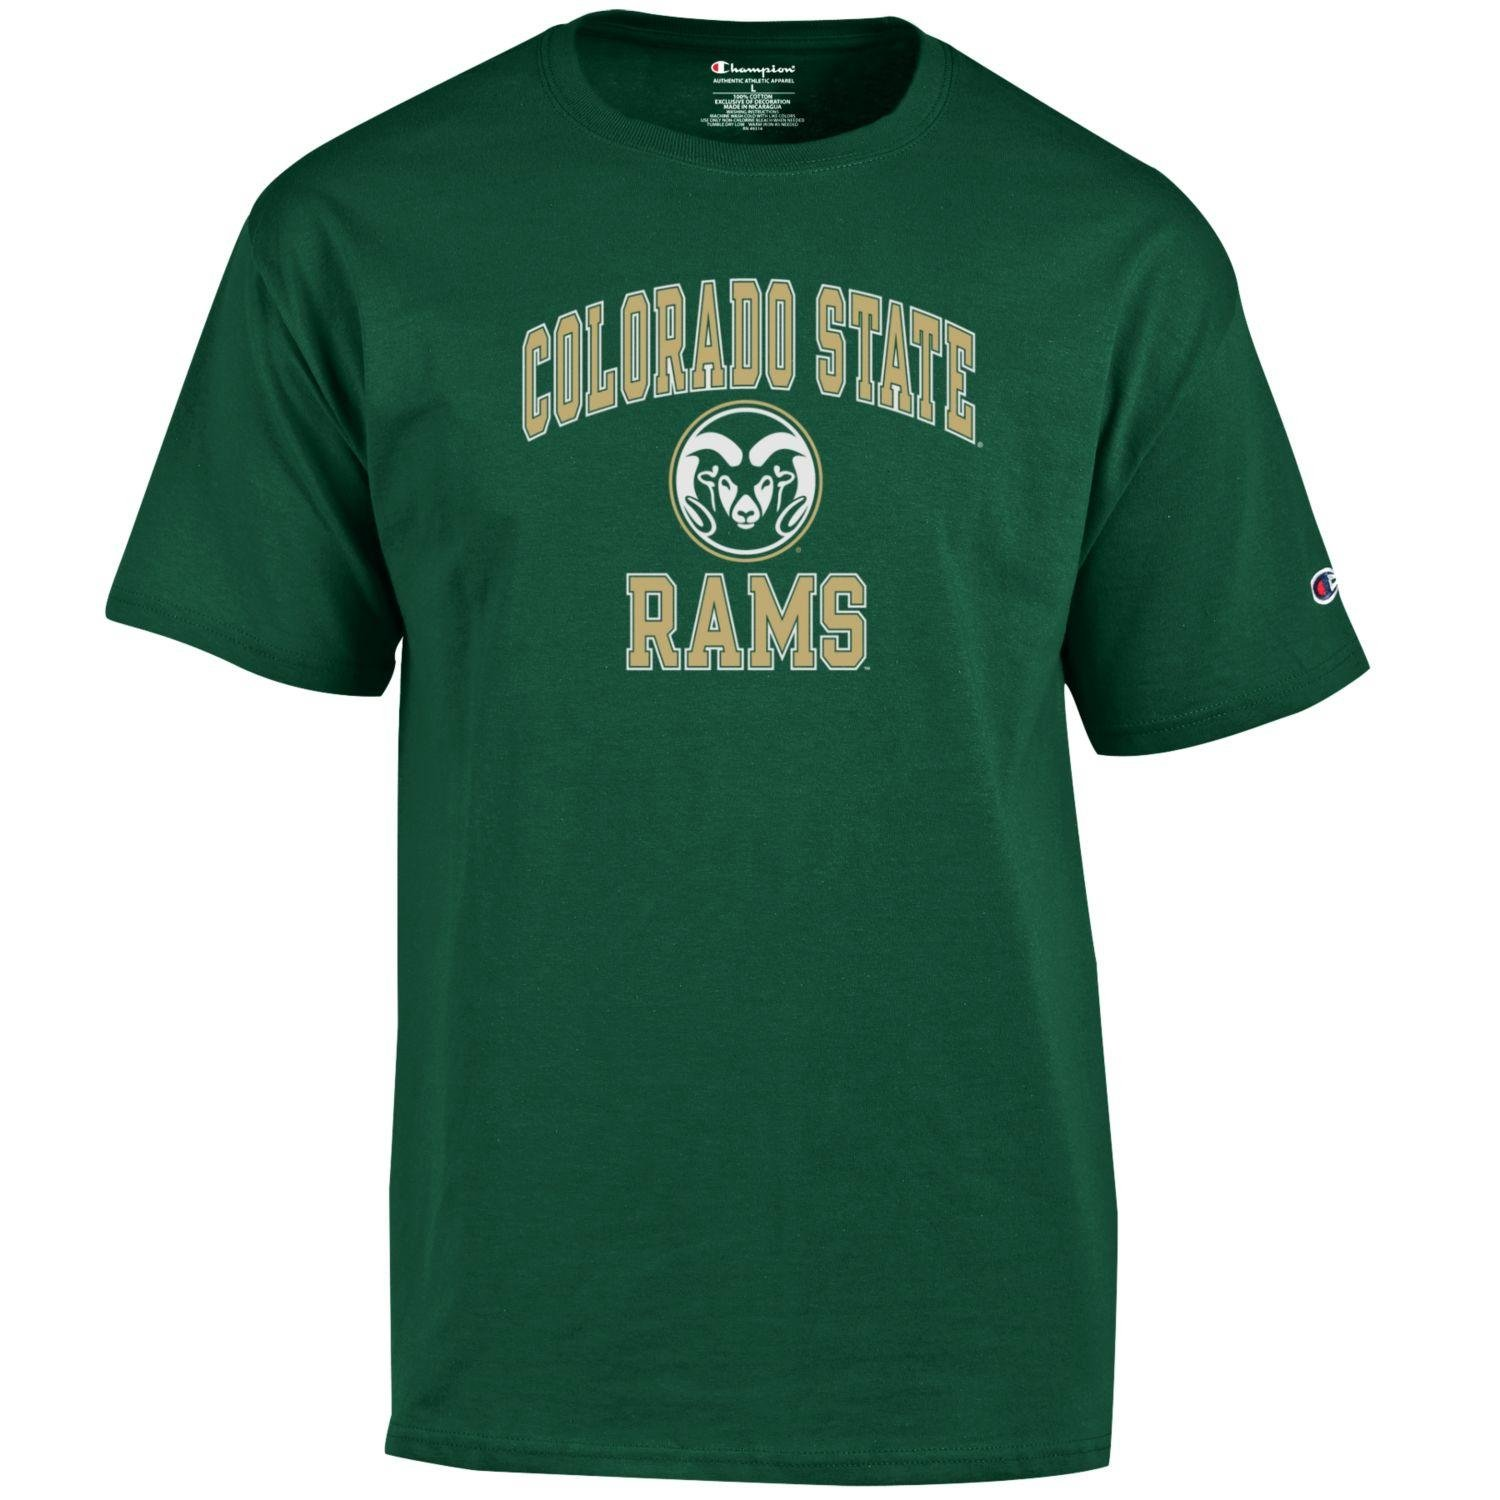 Champion NCAA Men's Shirt Short Sleeve Officially Licensed Team Color Tee, Colorado State Rams, X-Large